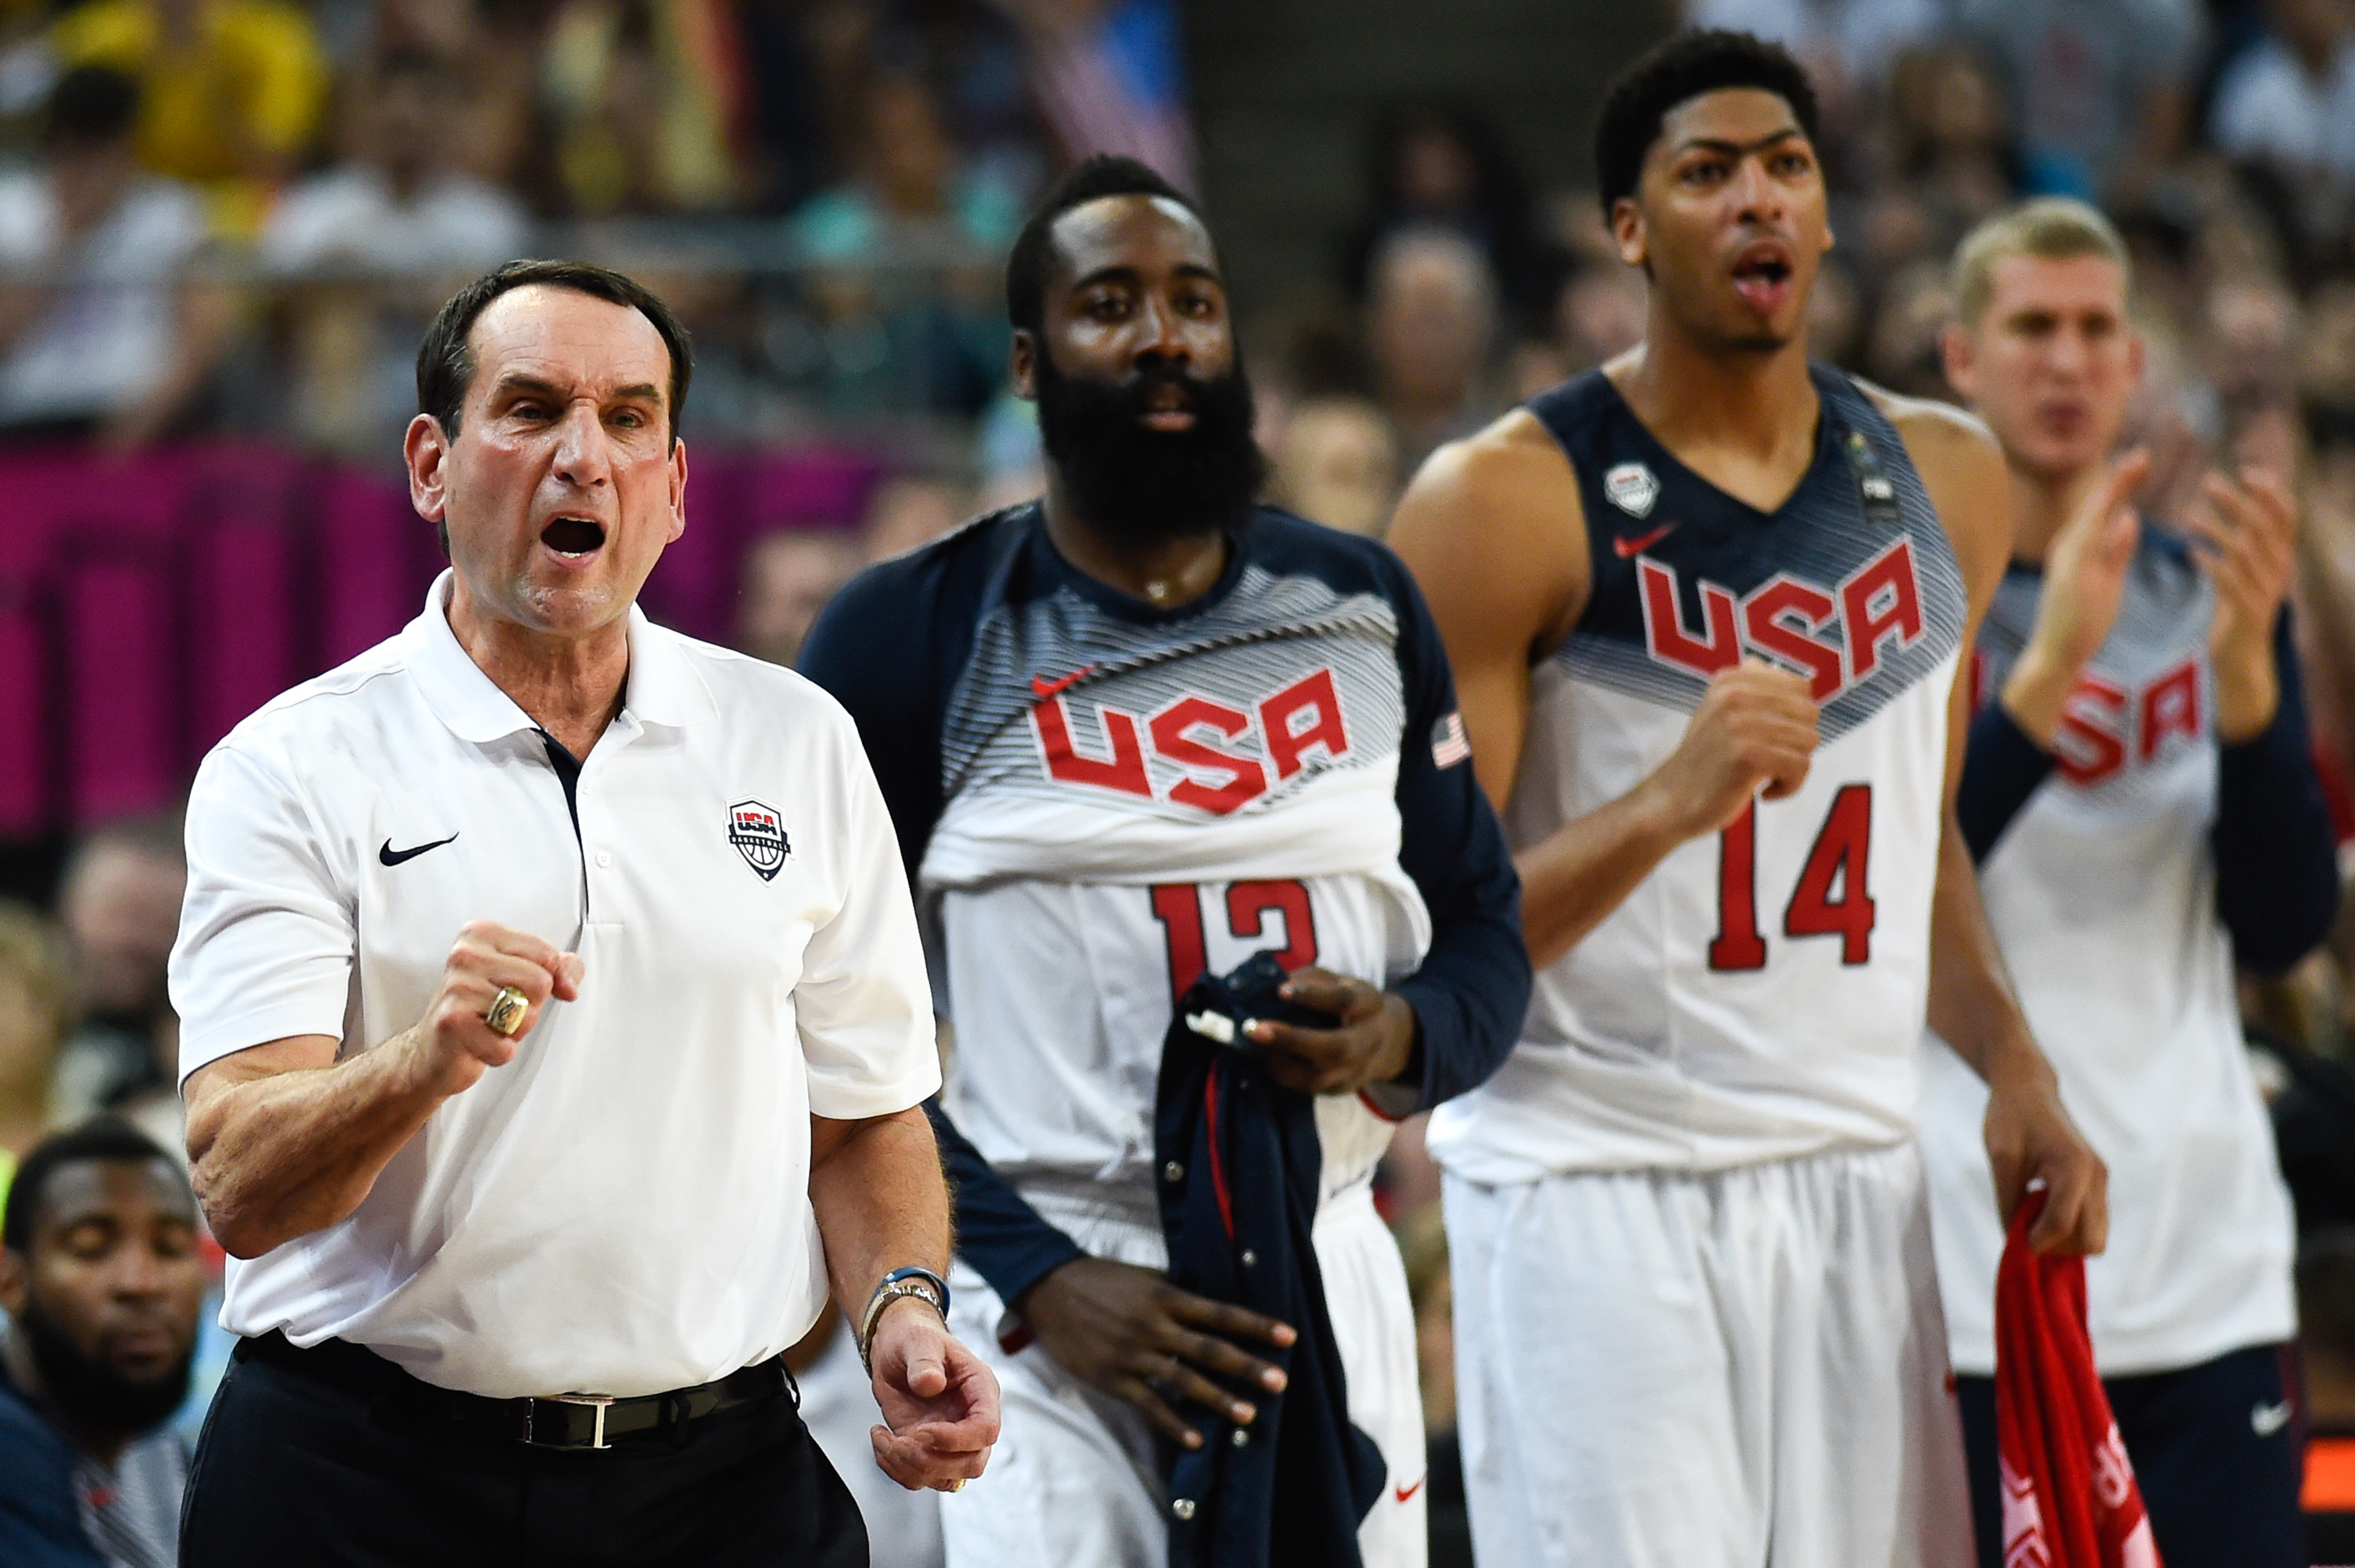 USA Basketball vs. Serbia, FIBA World Cup 2014: Time, TV schedule and how to watch online